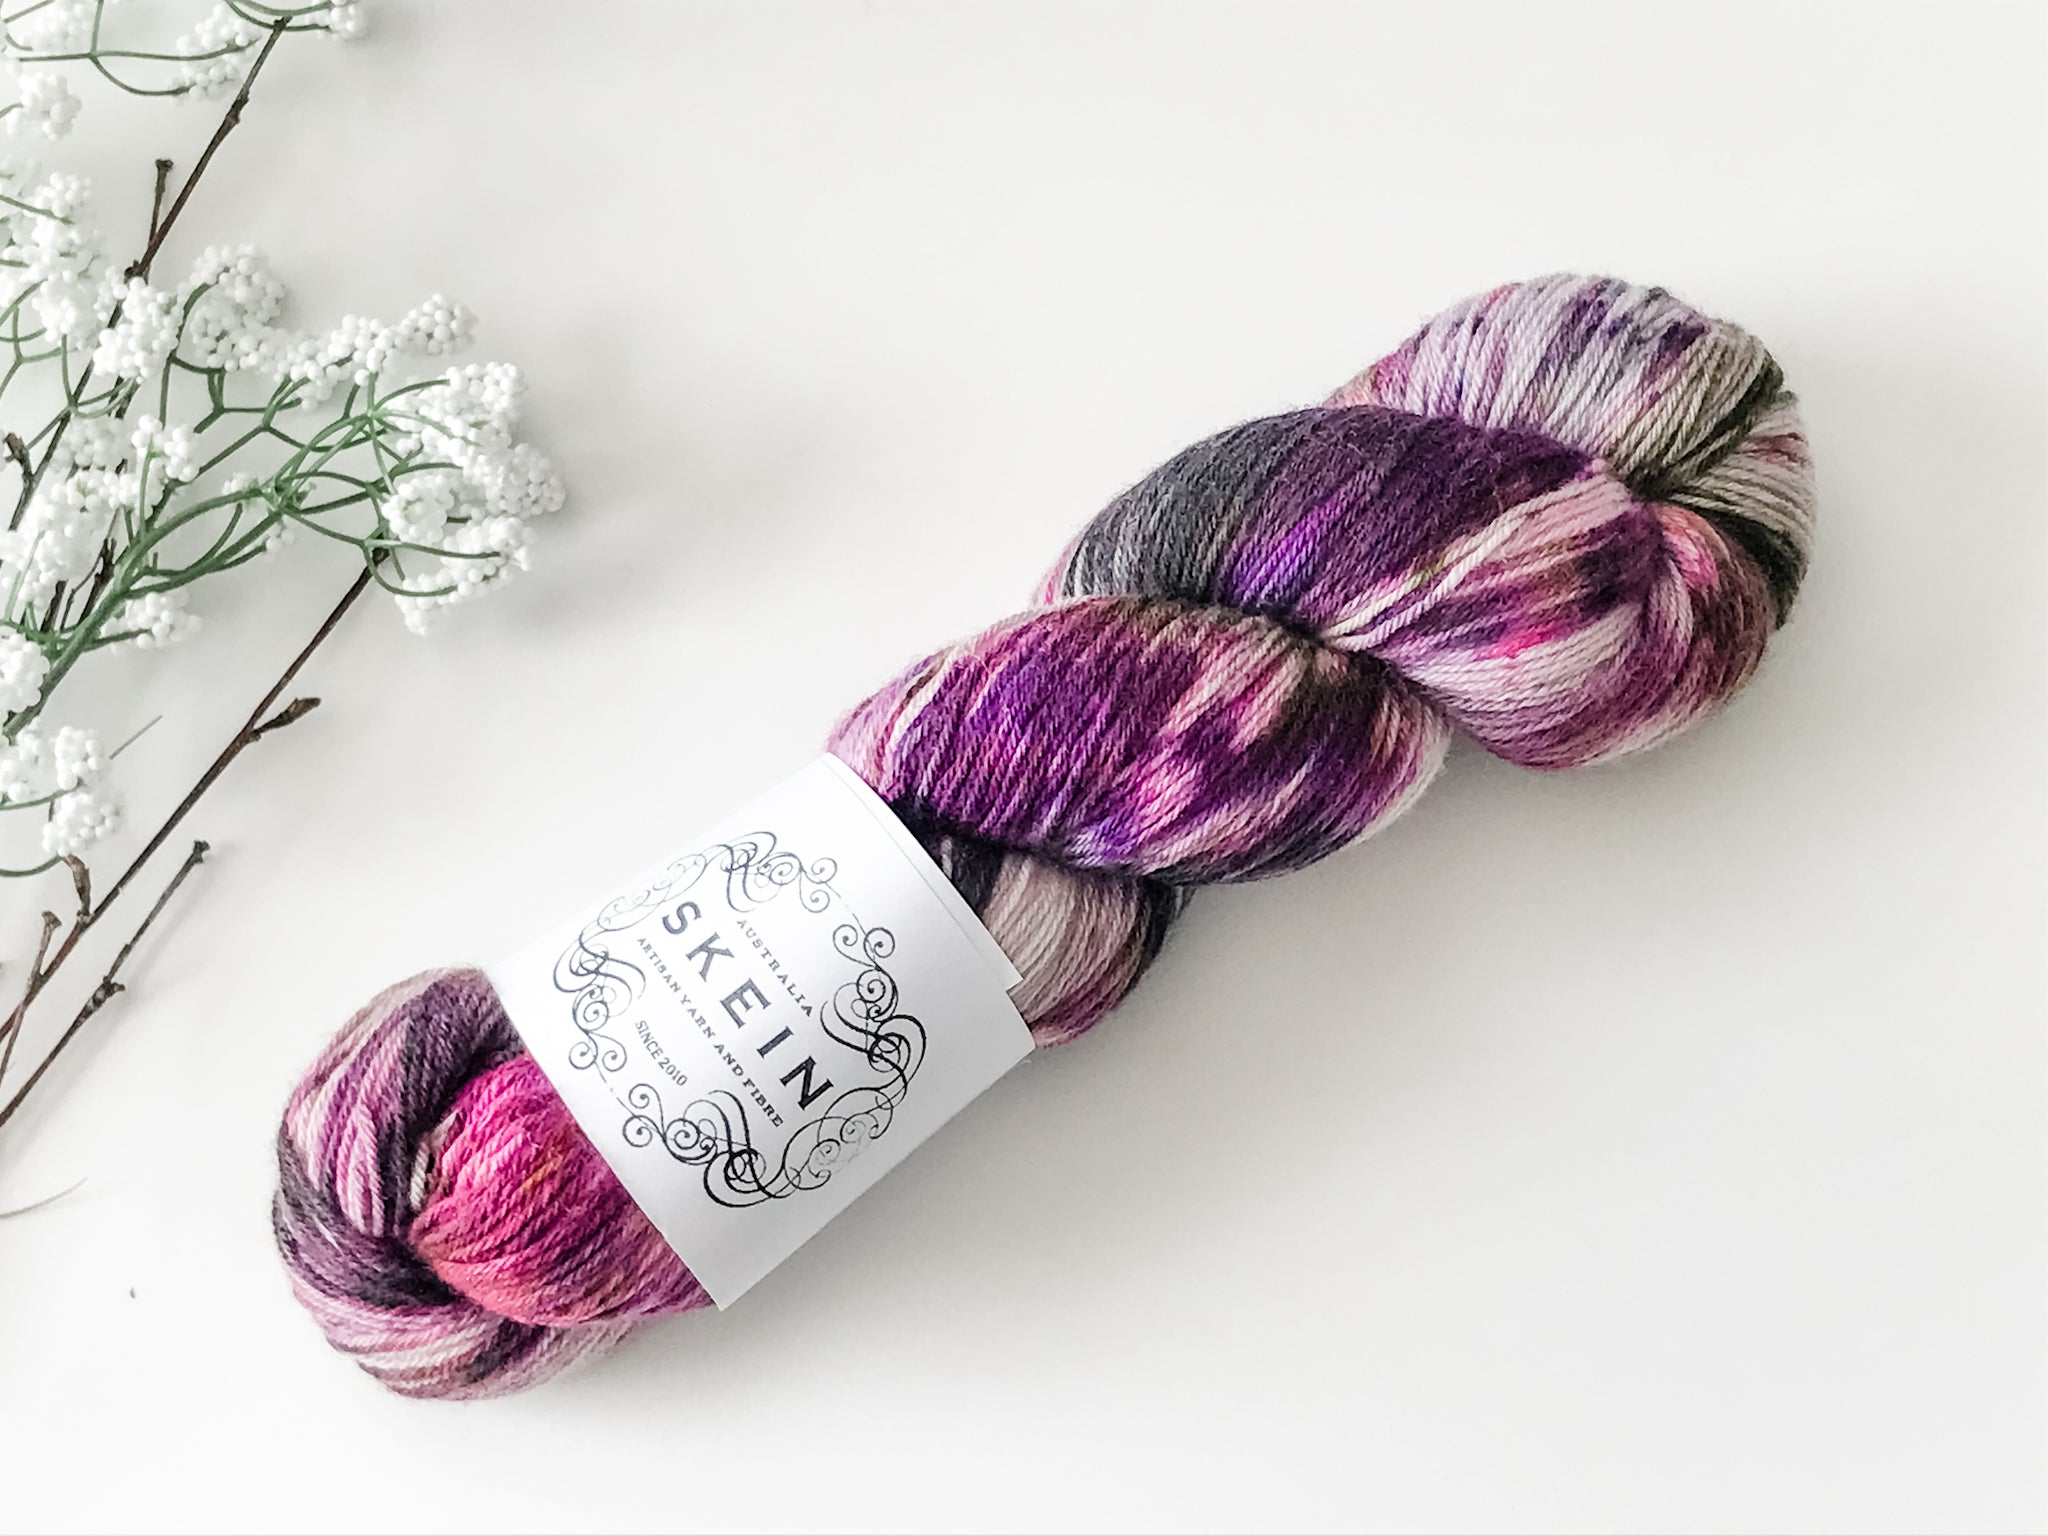 Skein Top Draw Sock Midnight Rose - The Handmaker's Bag